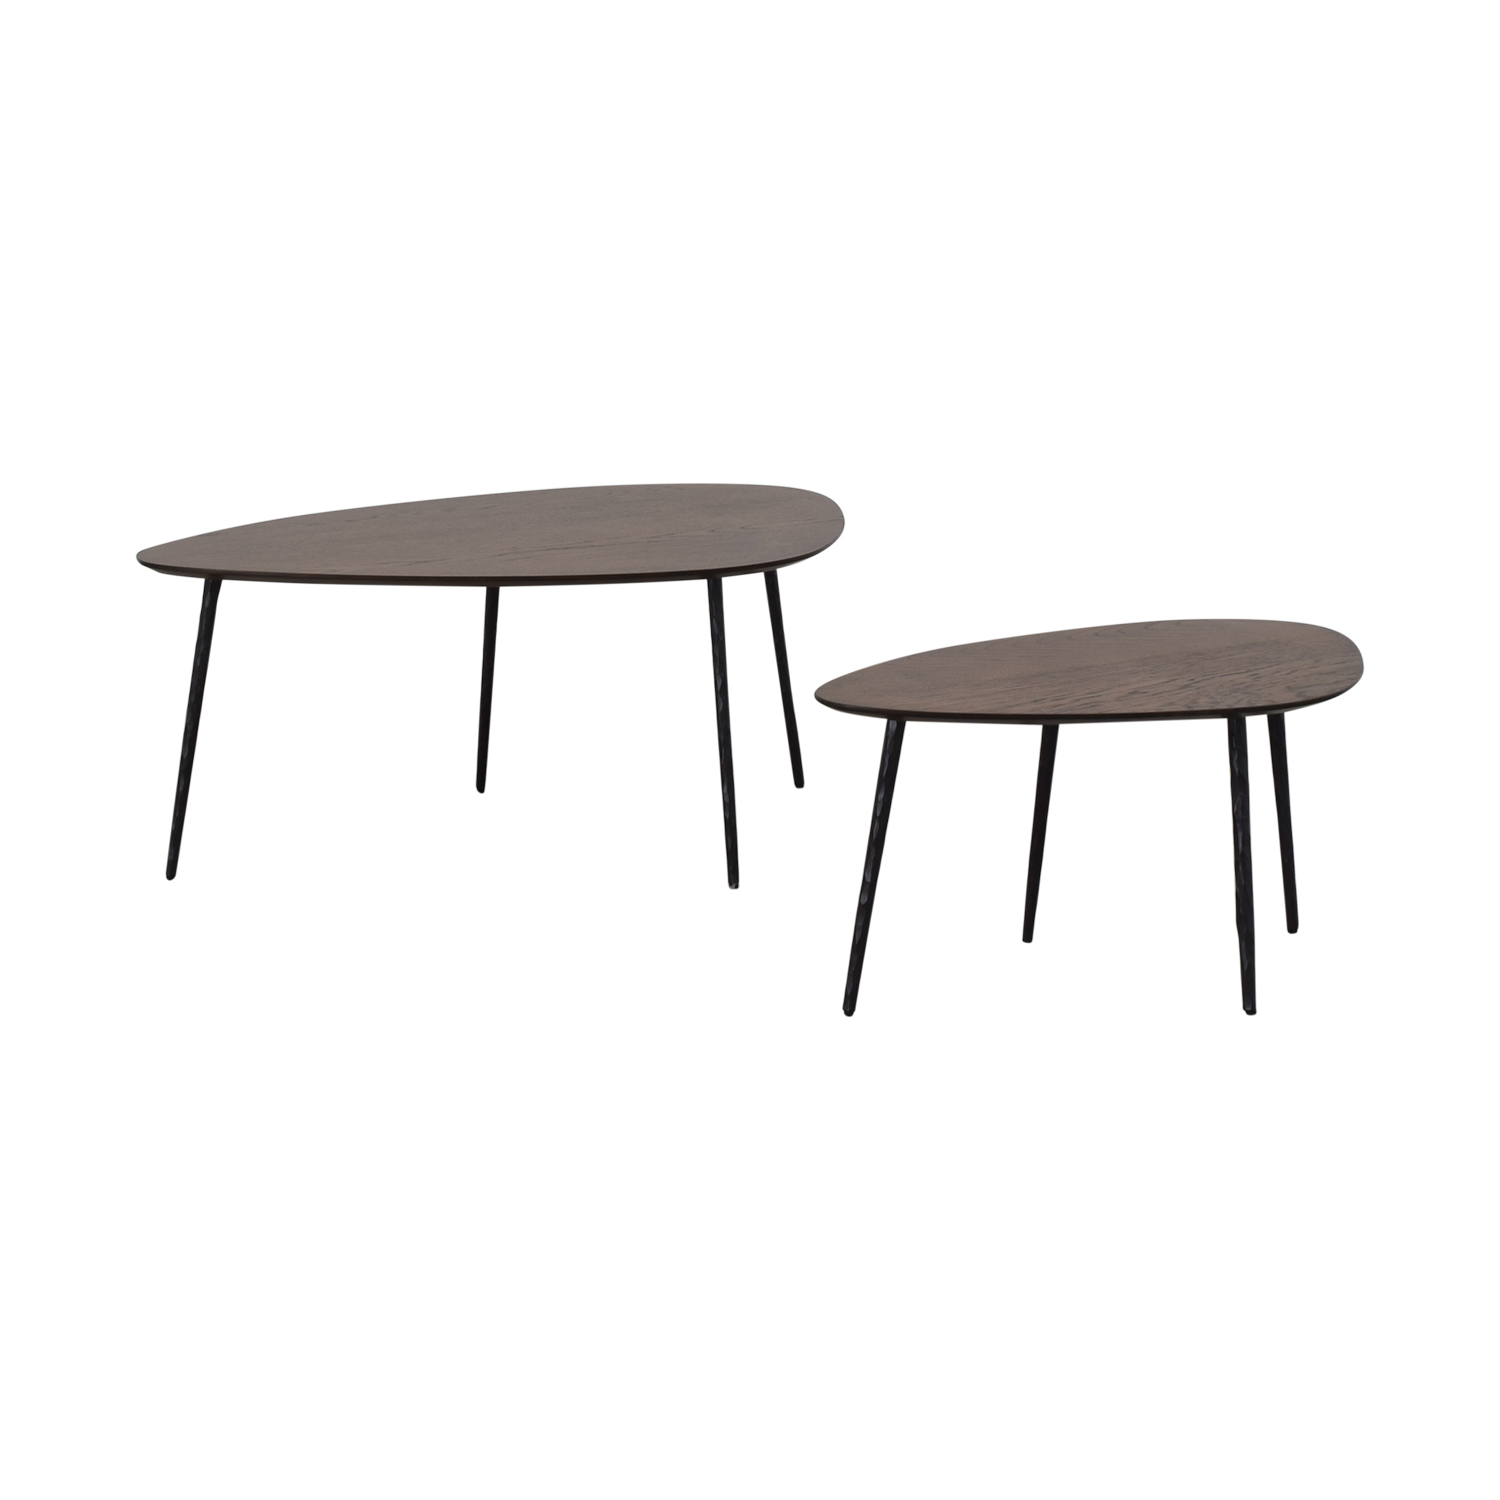 West Elm West Elm Earl Grey Architect Nesting Tables on sale